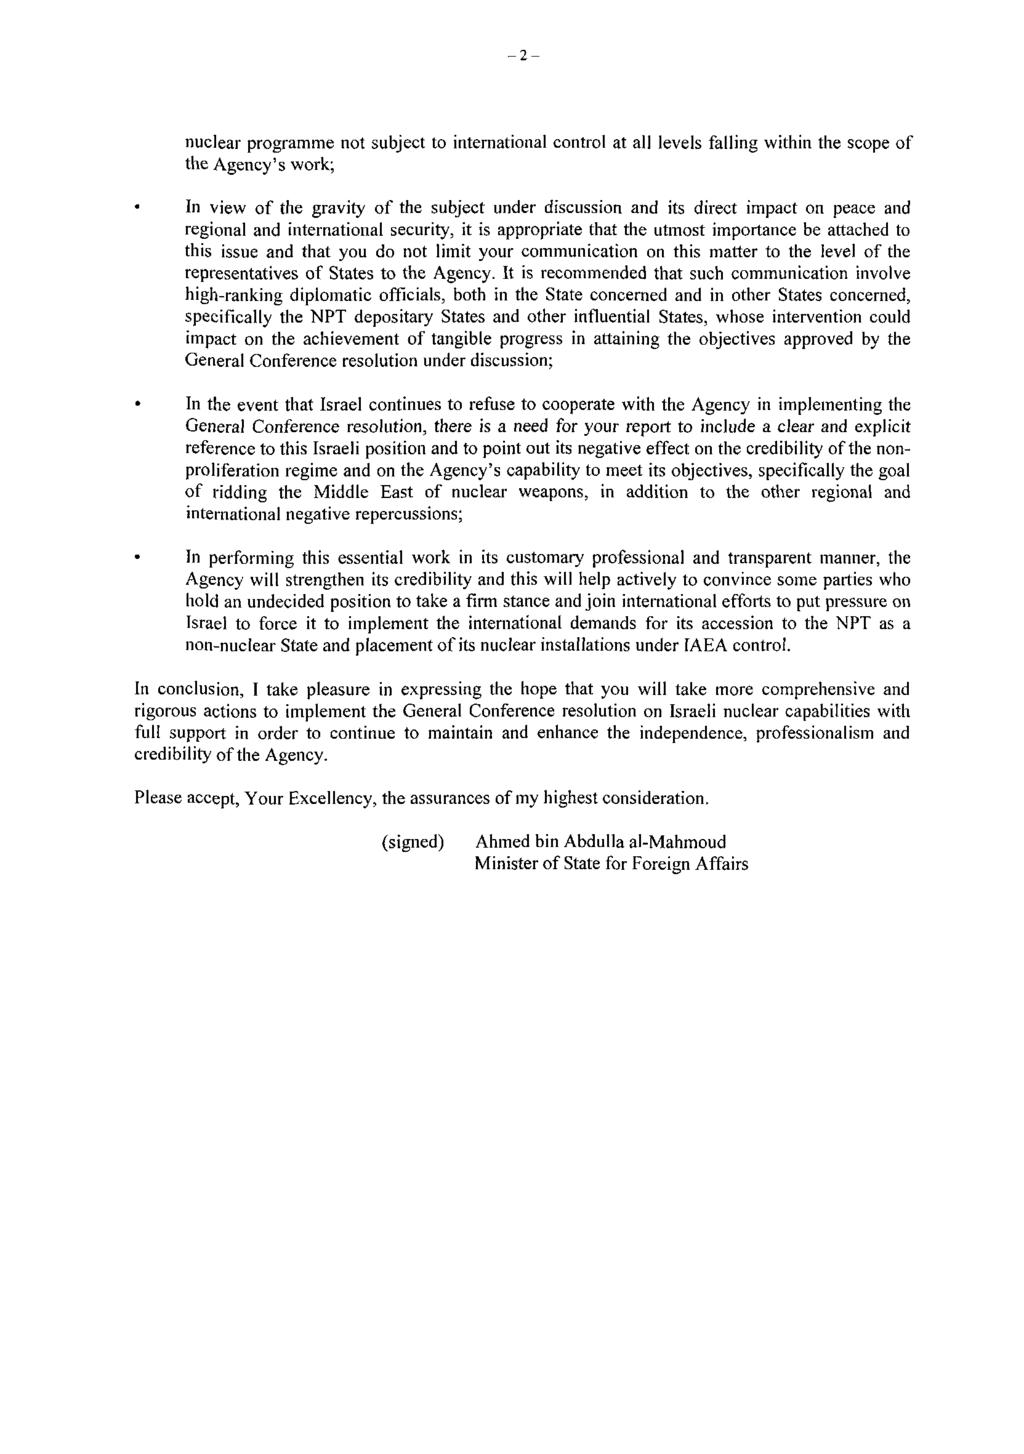 Page 56-2- nuclear programme not subject to international control at all levels falling within the scope of the Agency's work; In view of the gravity of the subject under discussion and its direct